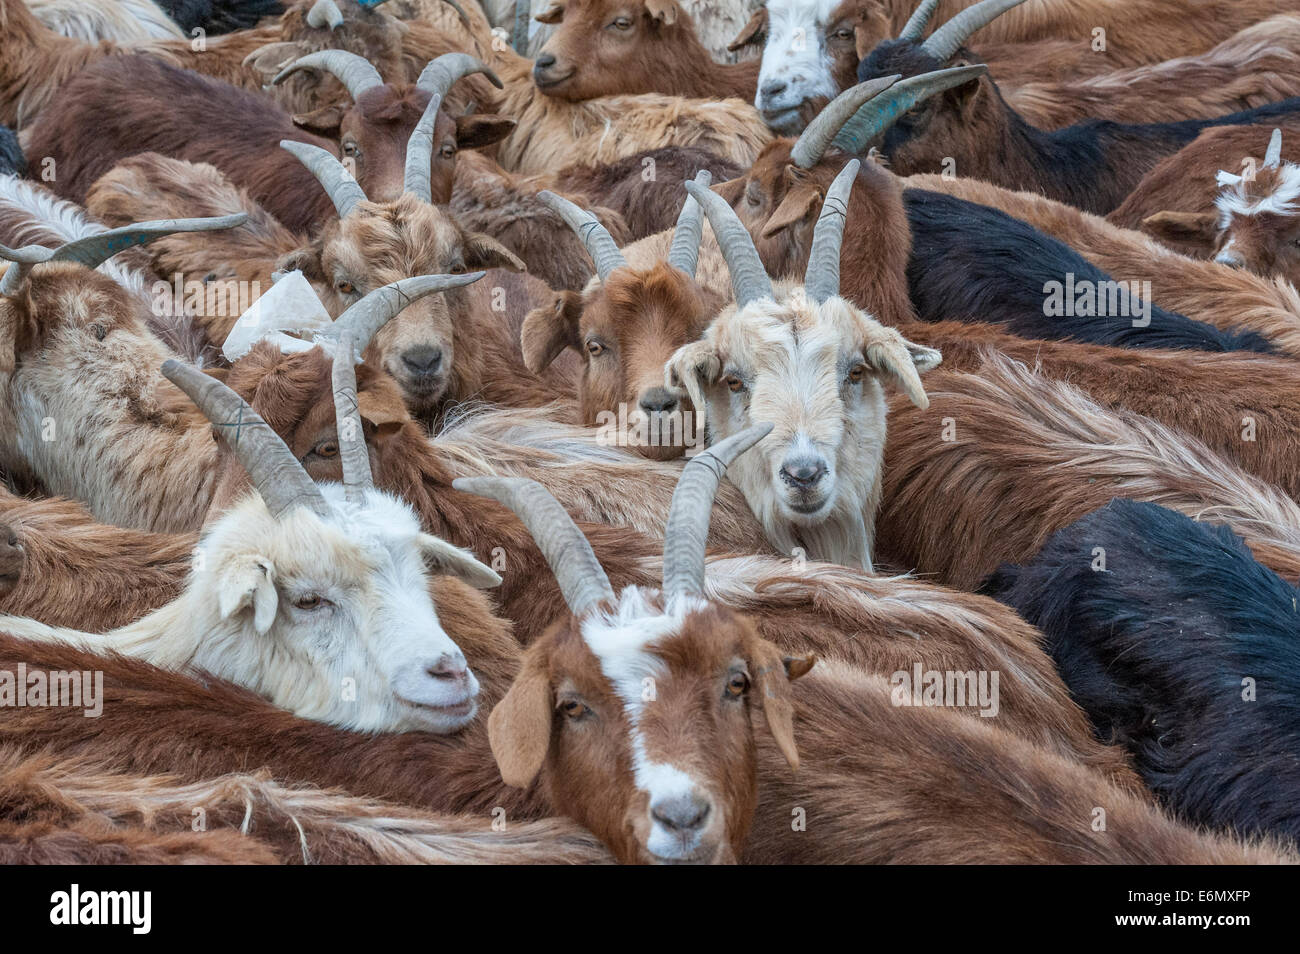 Close-up into a flock of cashmere goats in central Mongolia - Stock Image